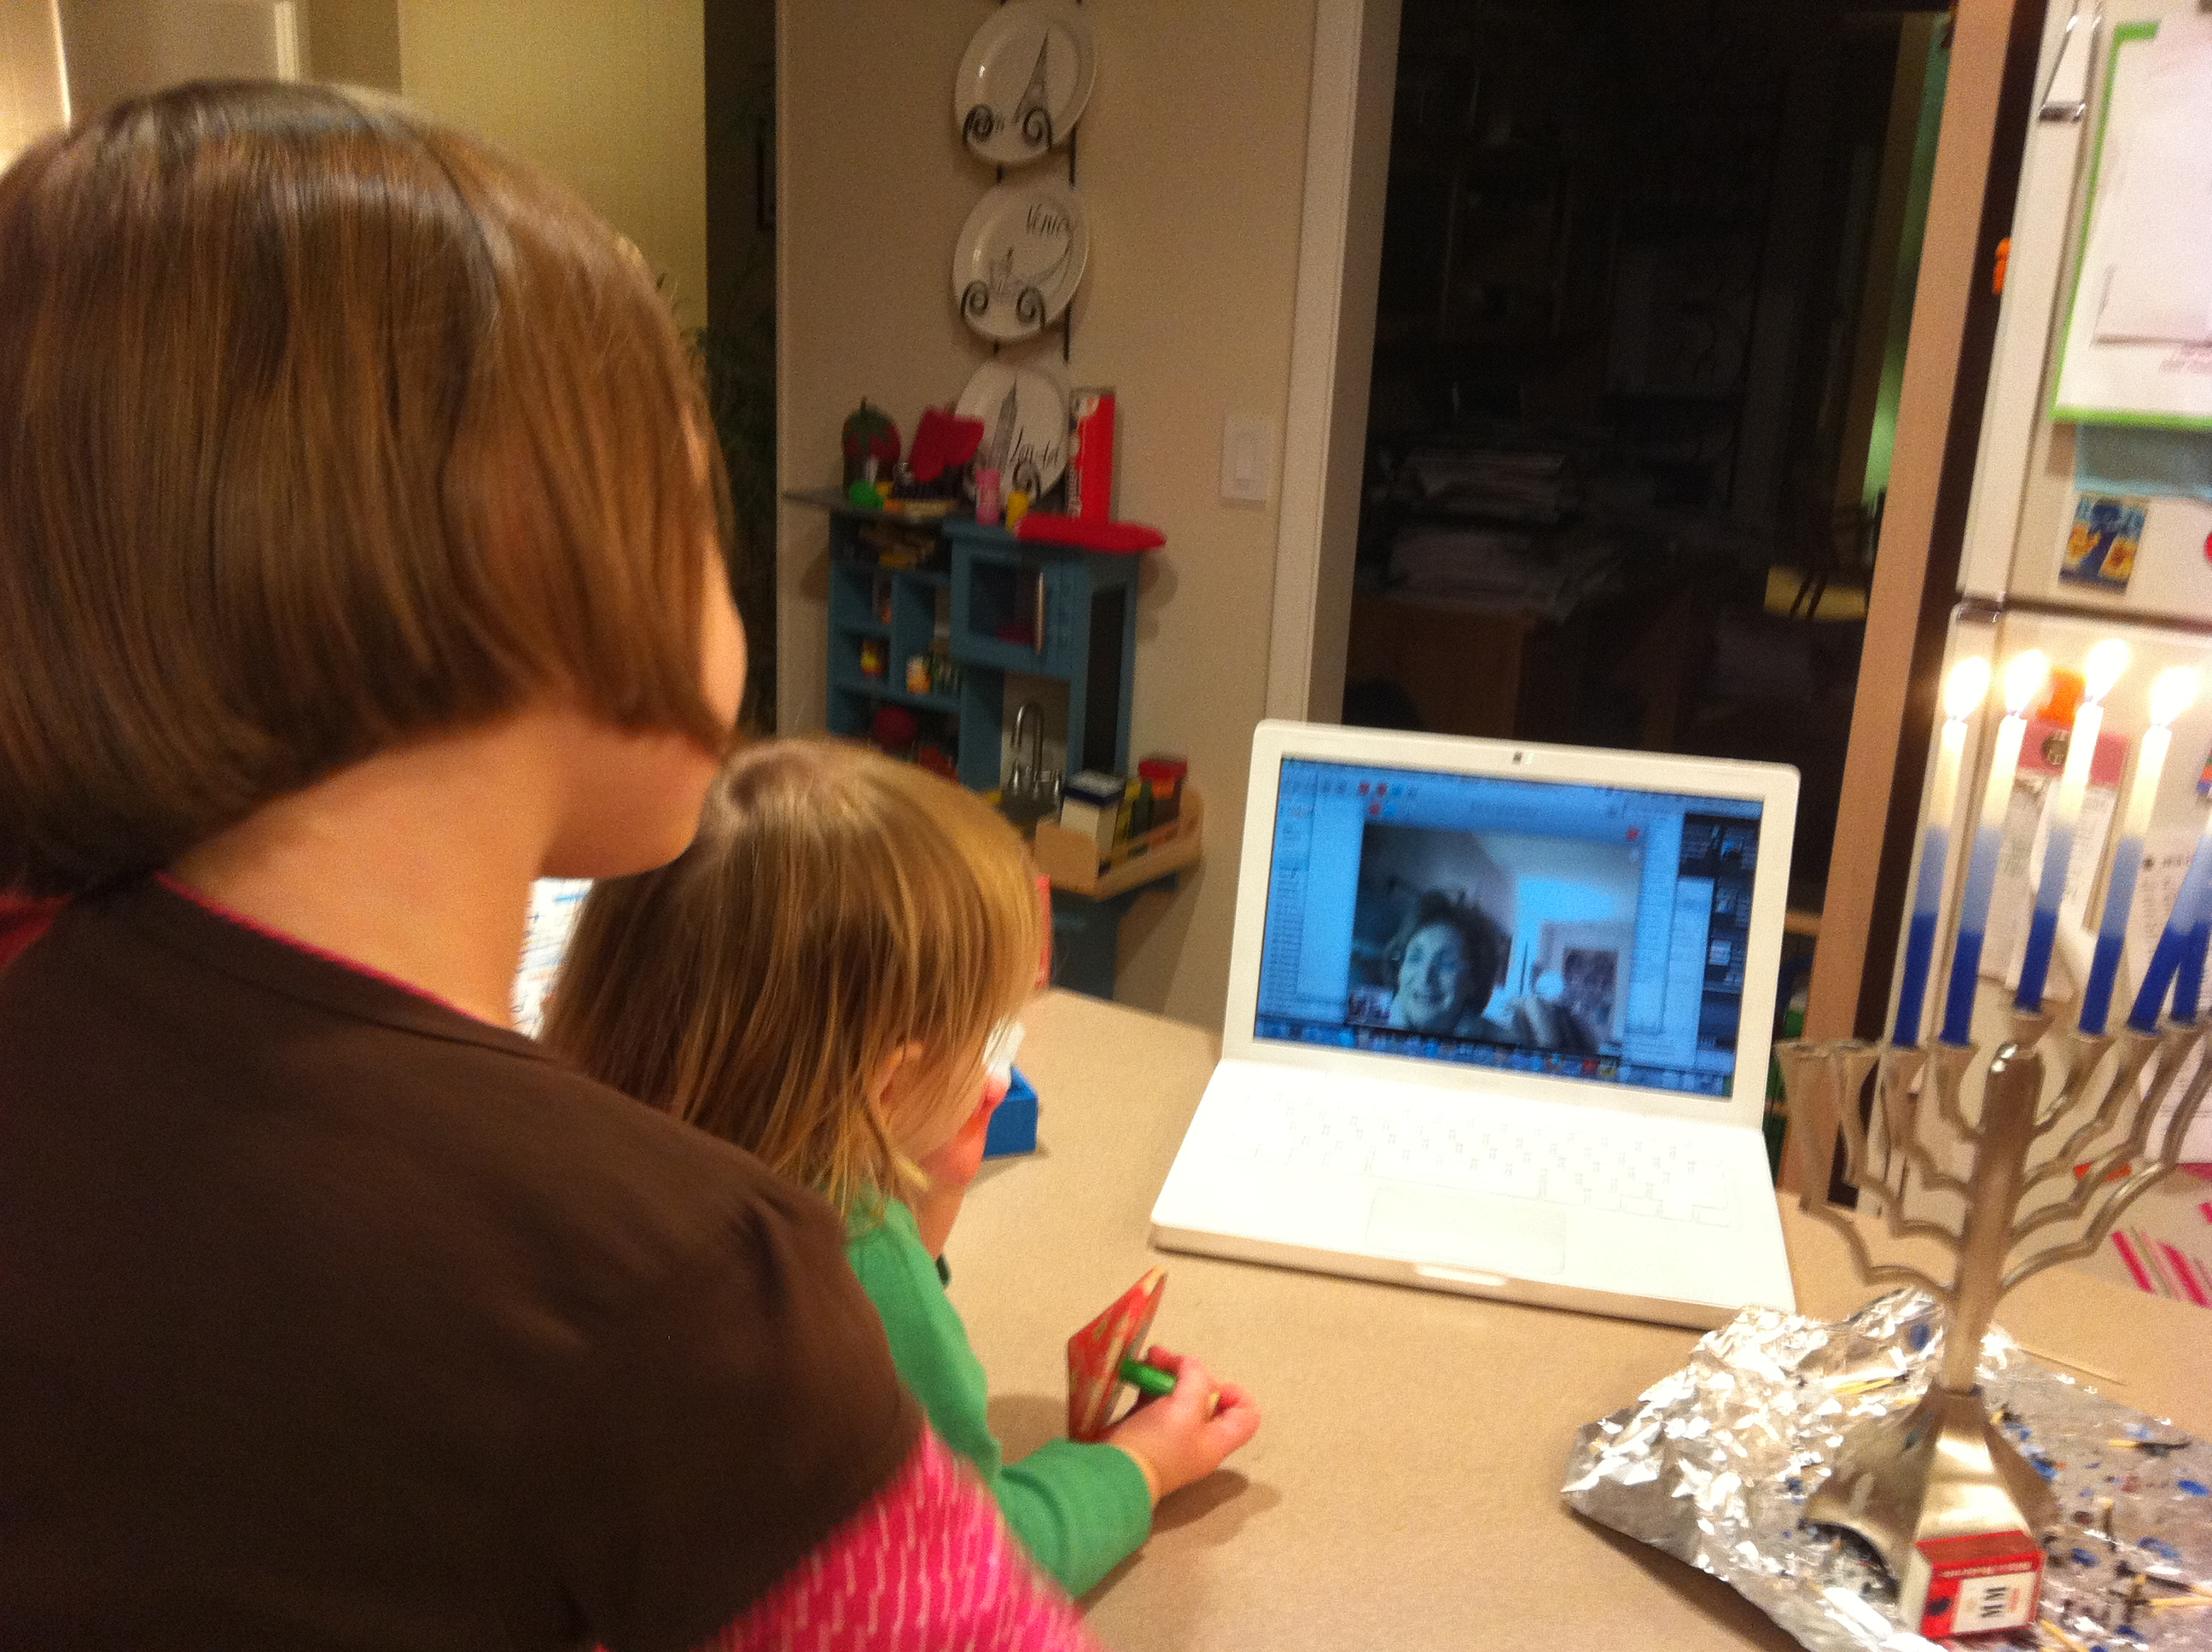 Skyping with the grandparents: a new Chanukah tradition. Photo by Laura Weisskopf Bleill